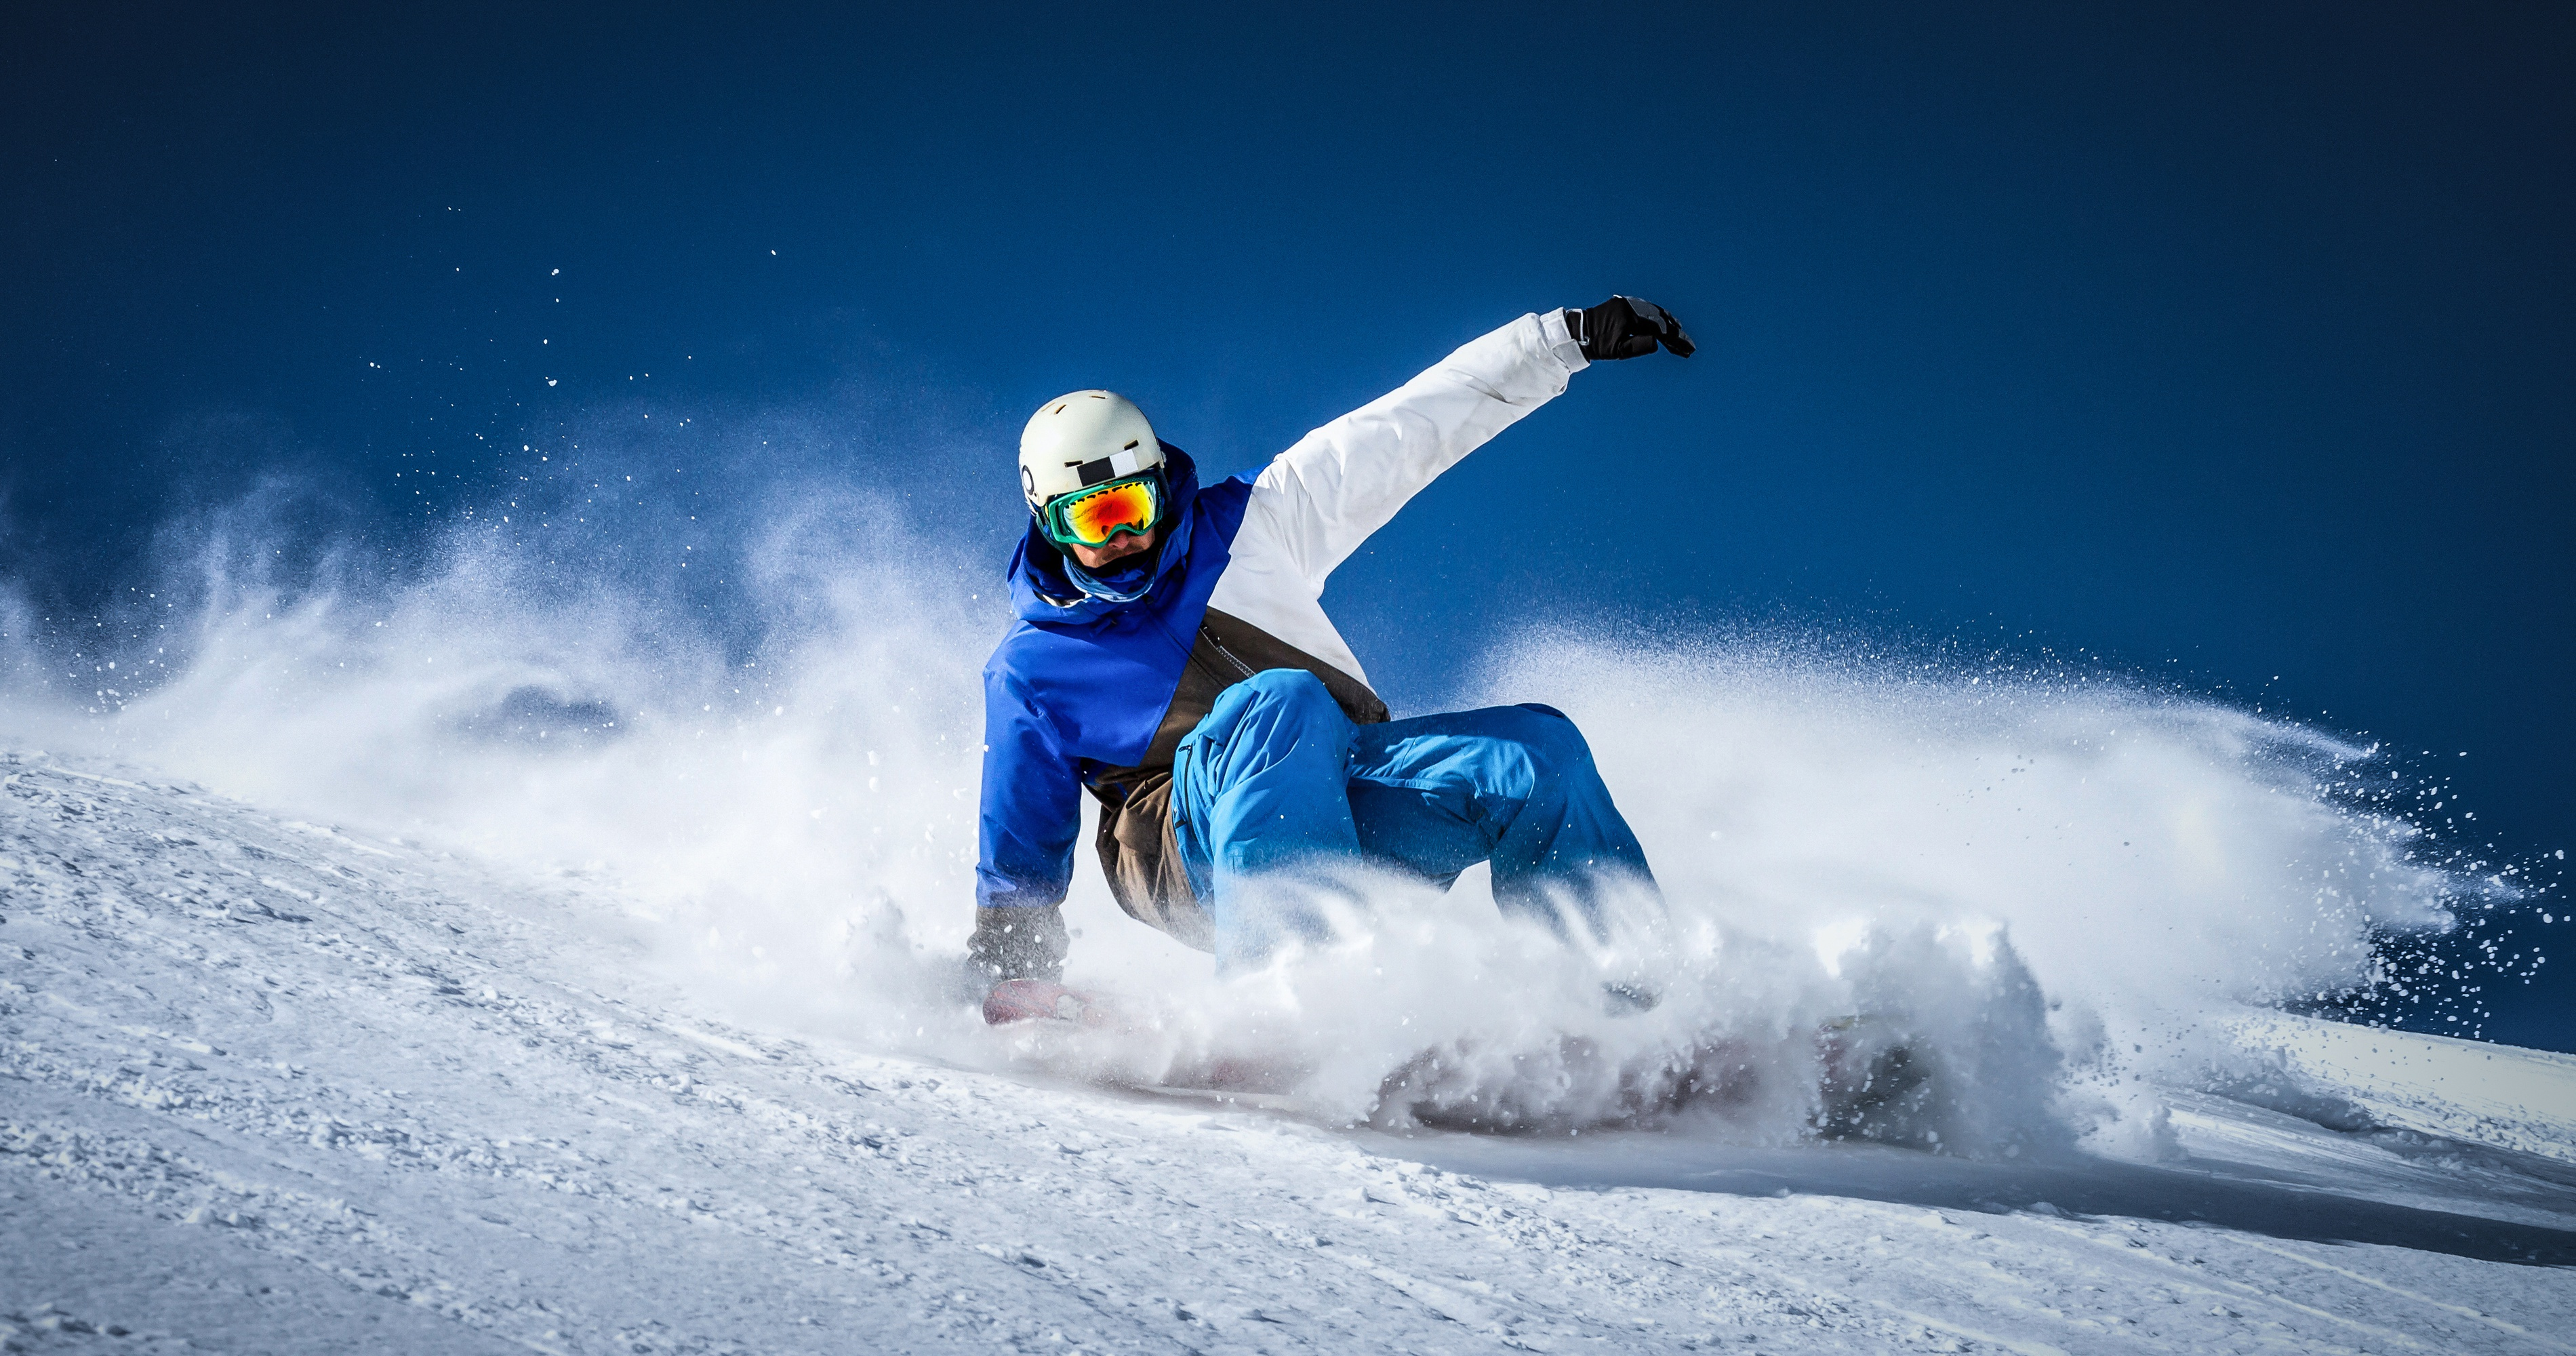 Snowboarding, HD Sports, 4k Wallpapers, Images